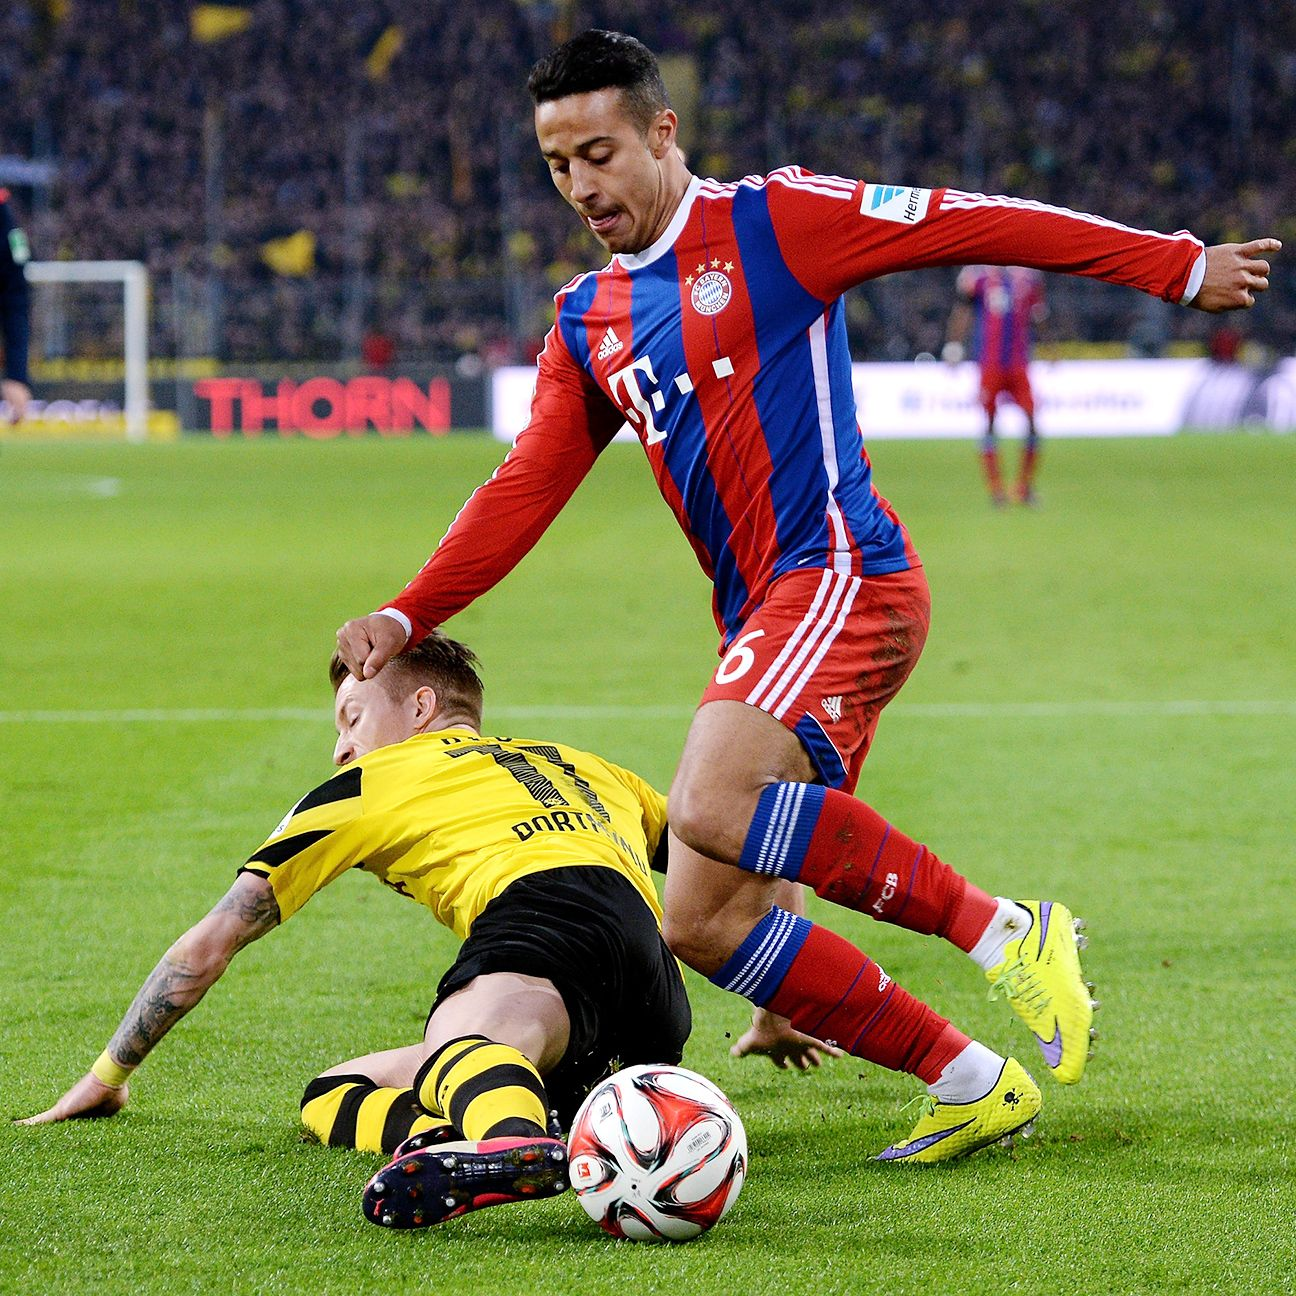 The return of Thiago should bolster what has been a banged-up Bayern in 2015.